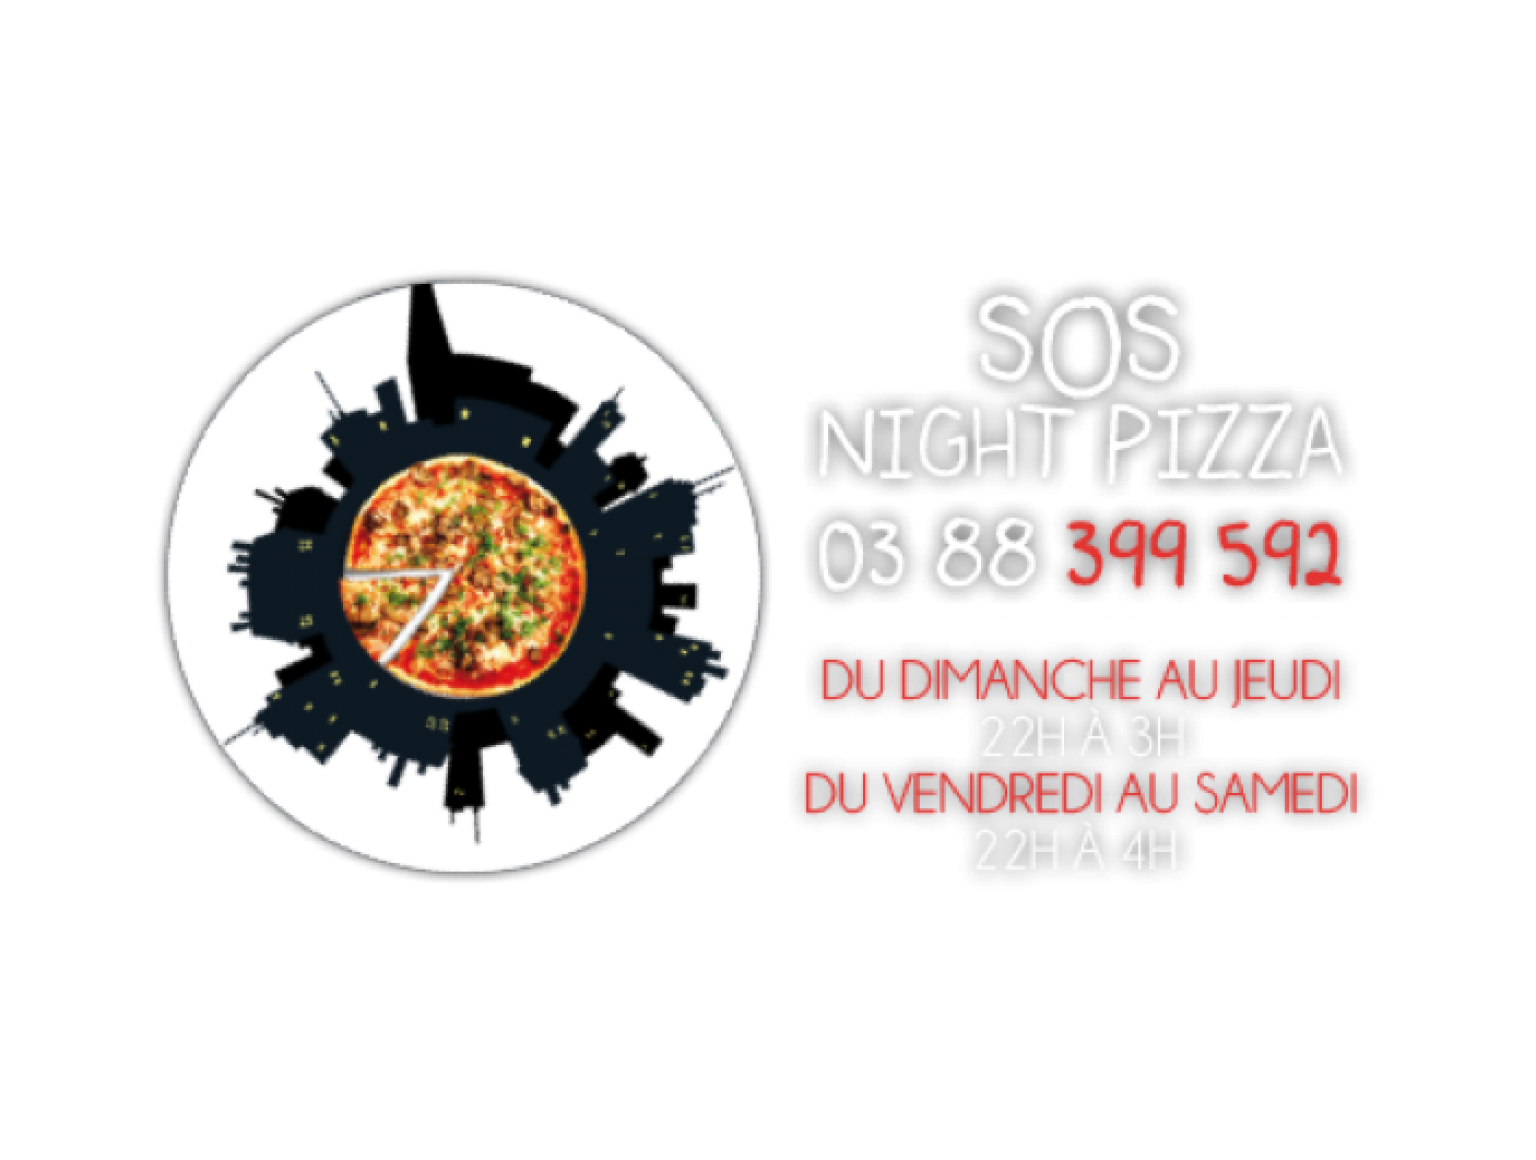 SOS Night Pizza